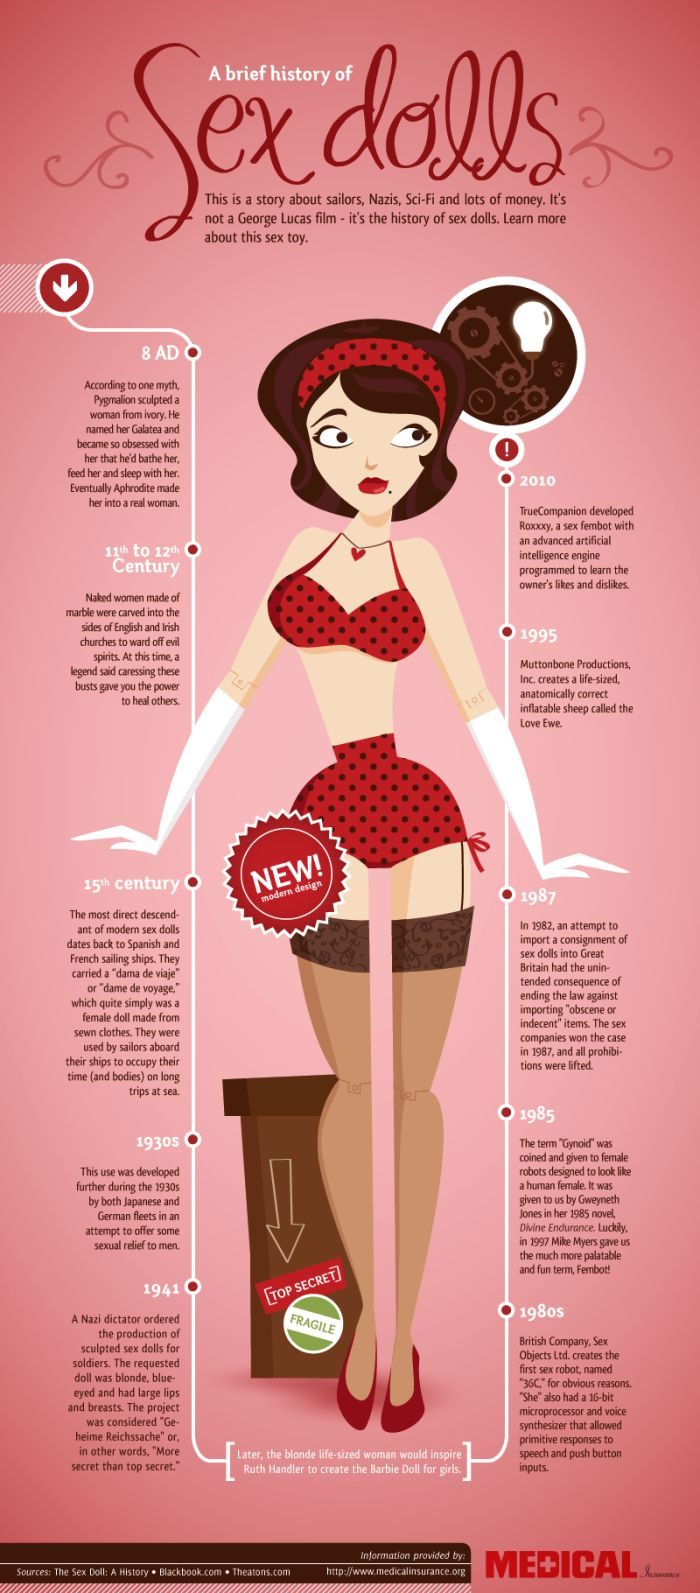 A Brief History of Sex Dolls (Infographic)